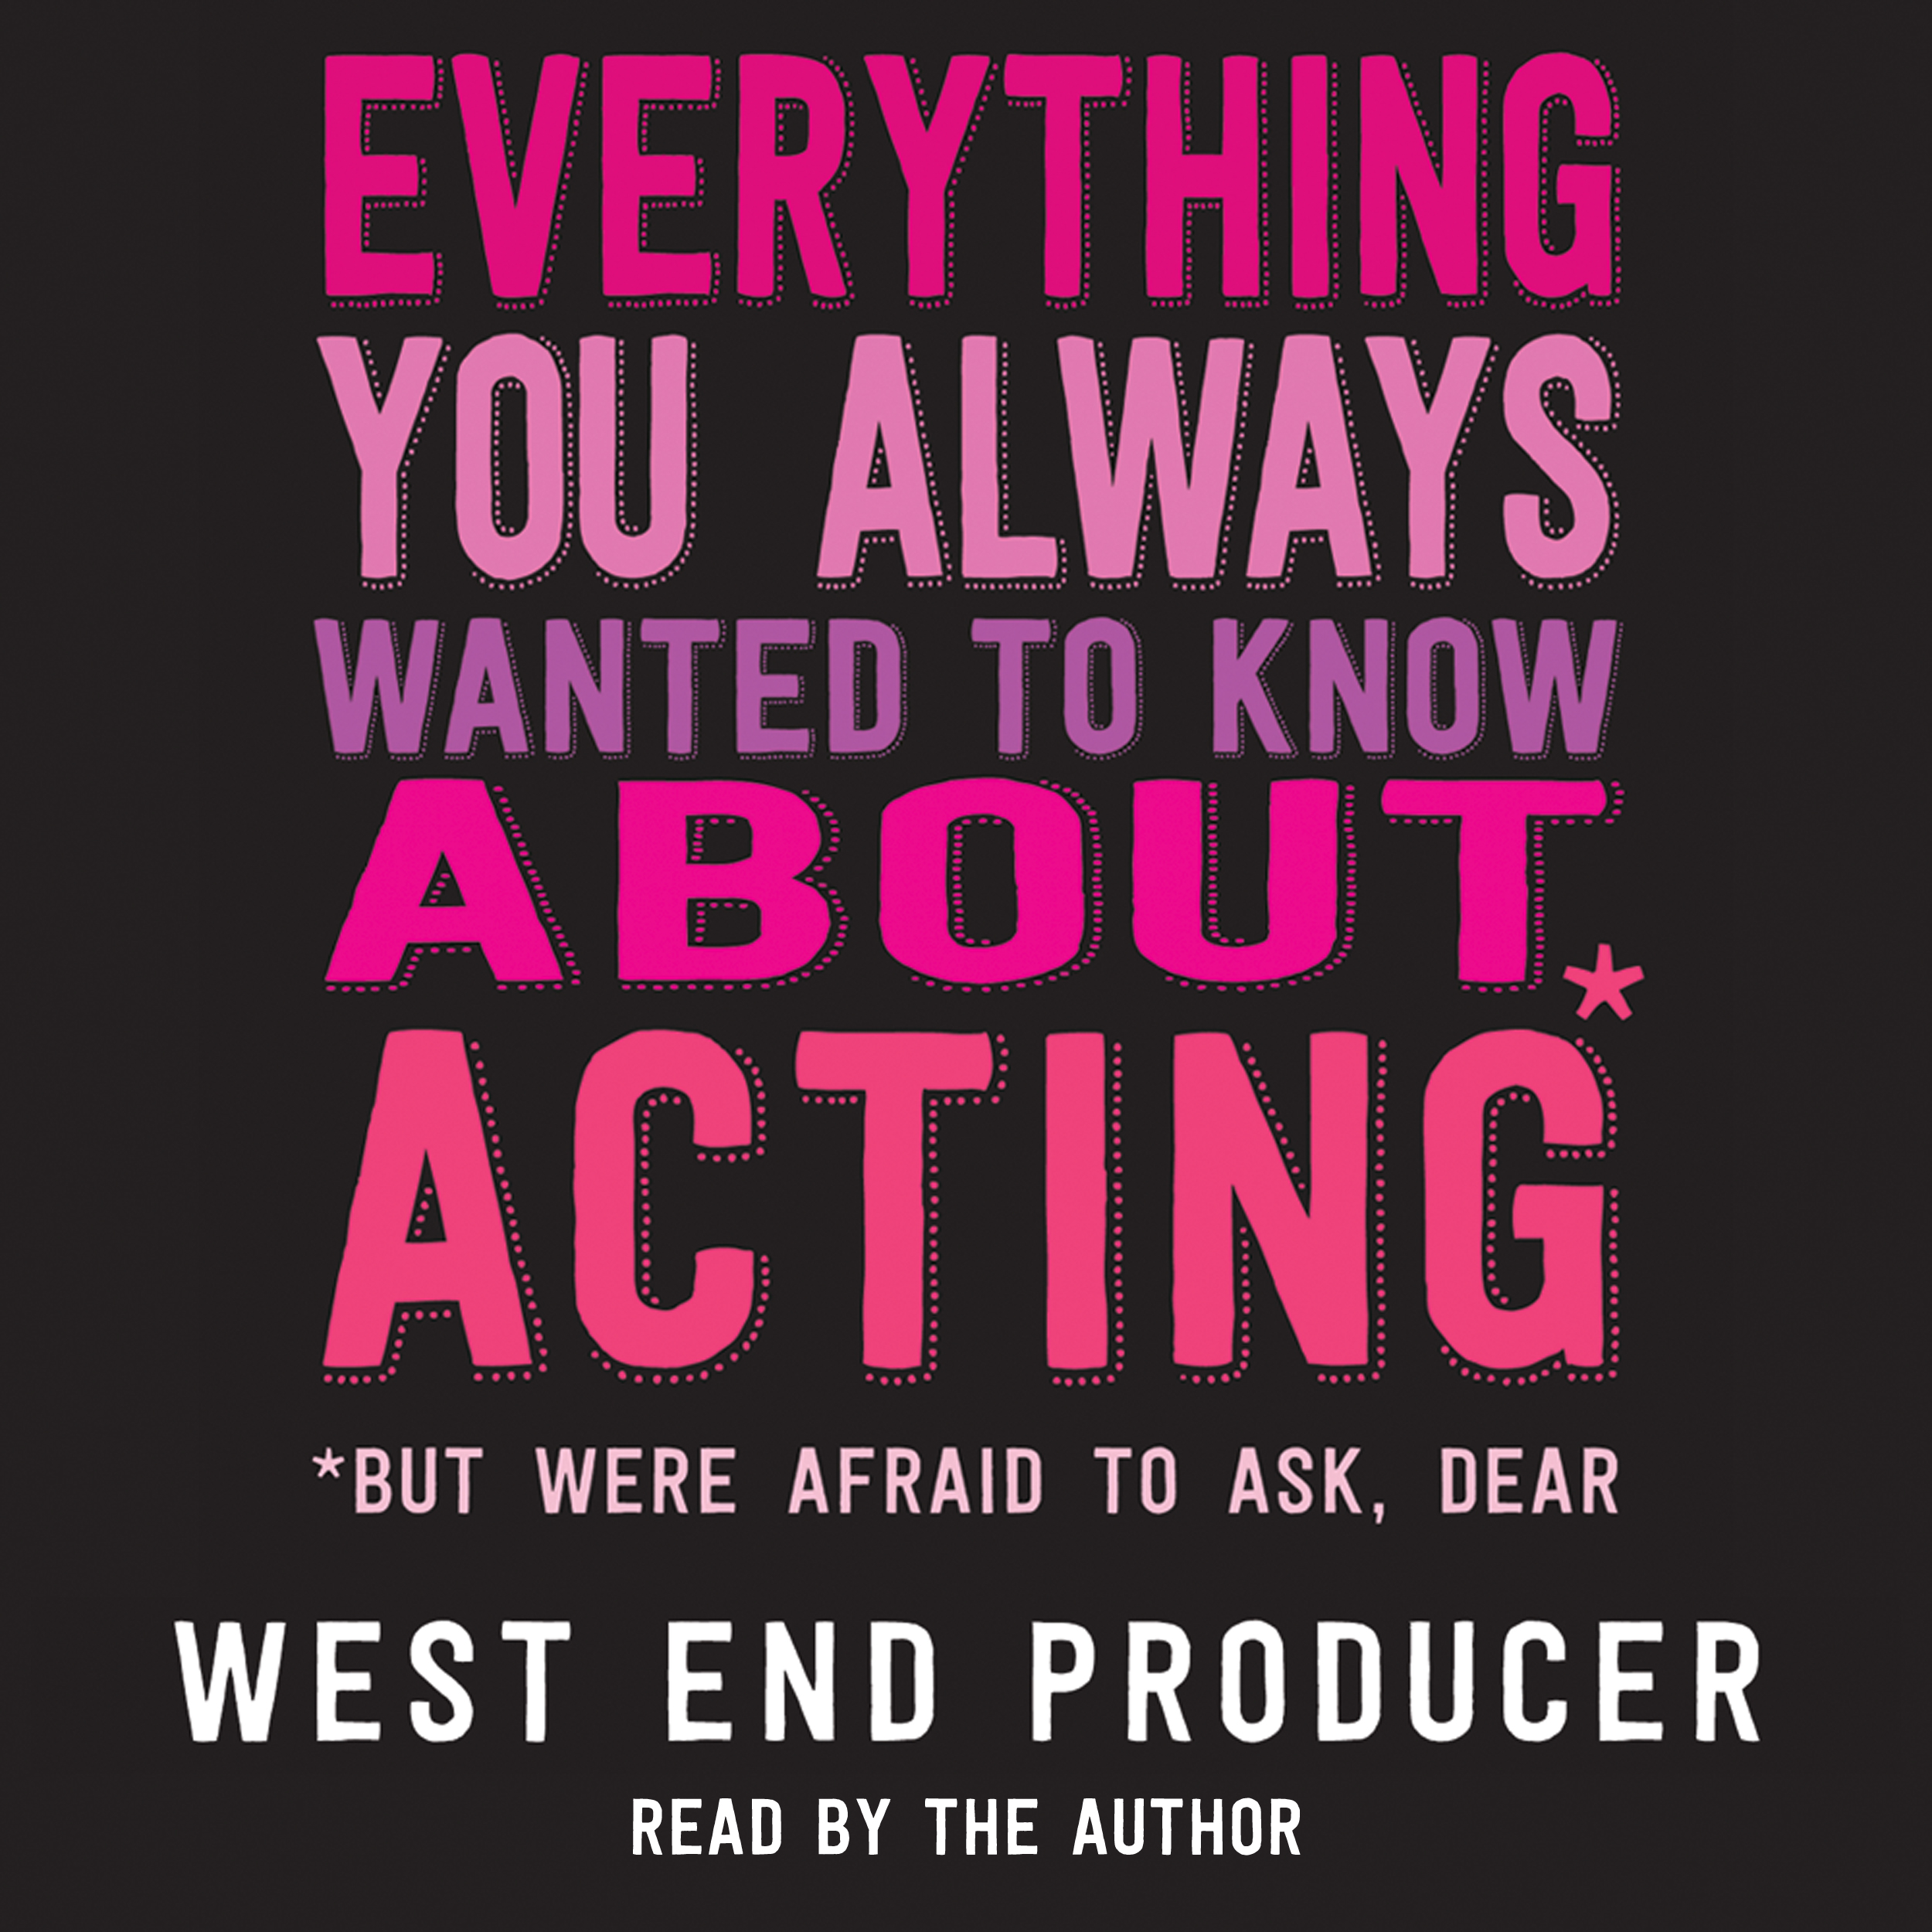 West End Producer audiobook out now